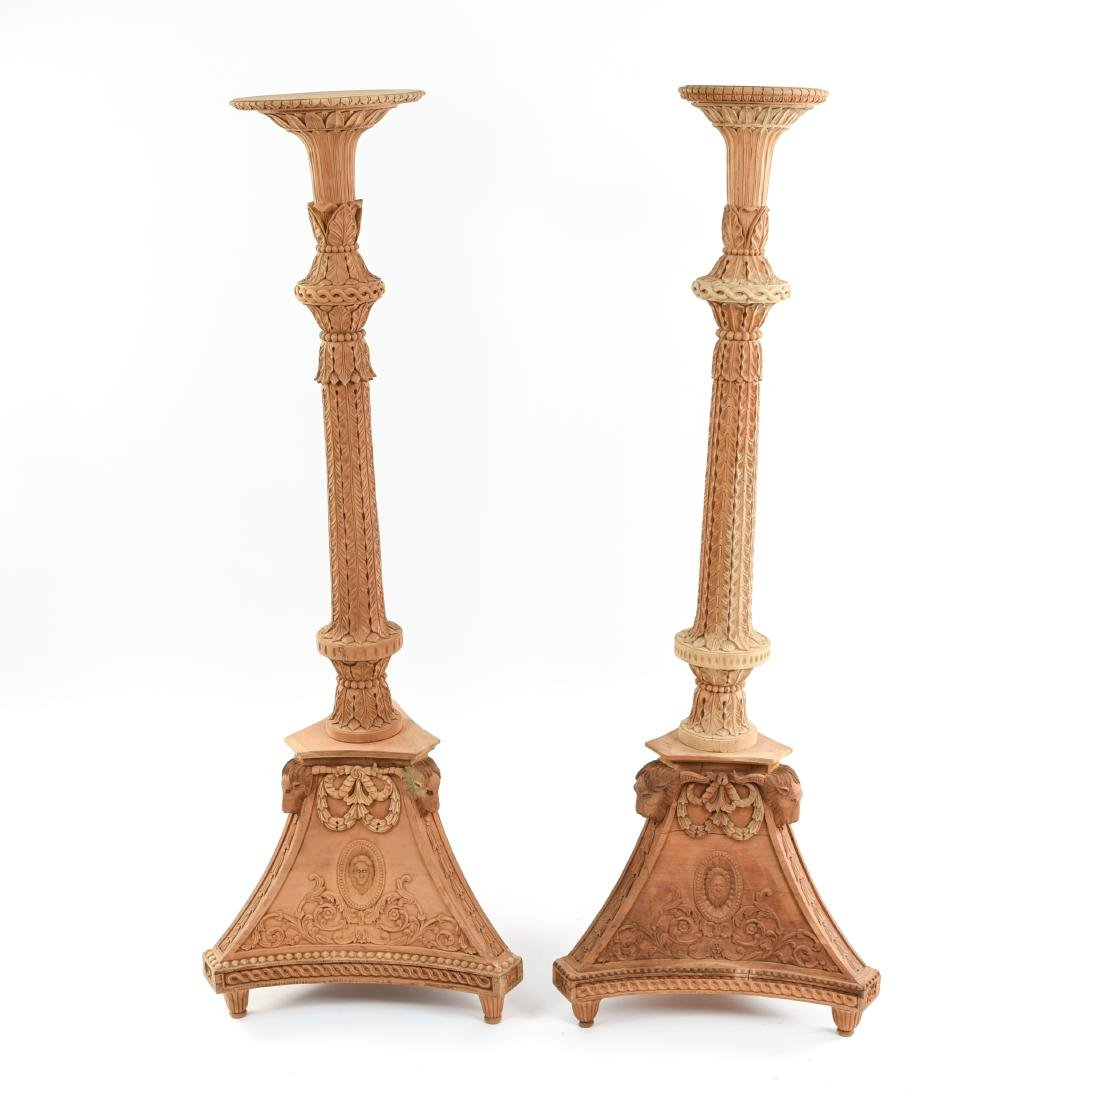 PAIR OF CARVED PEDESTAL STANDS